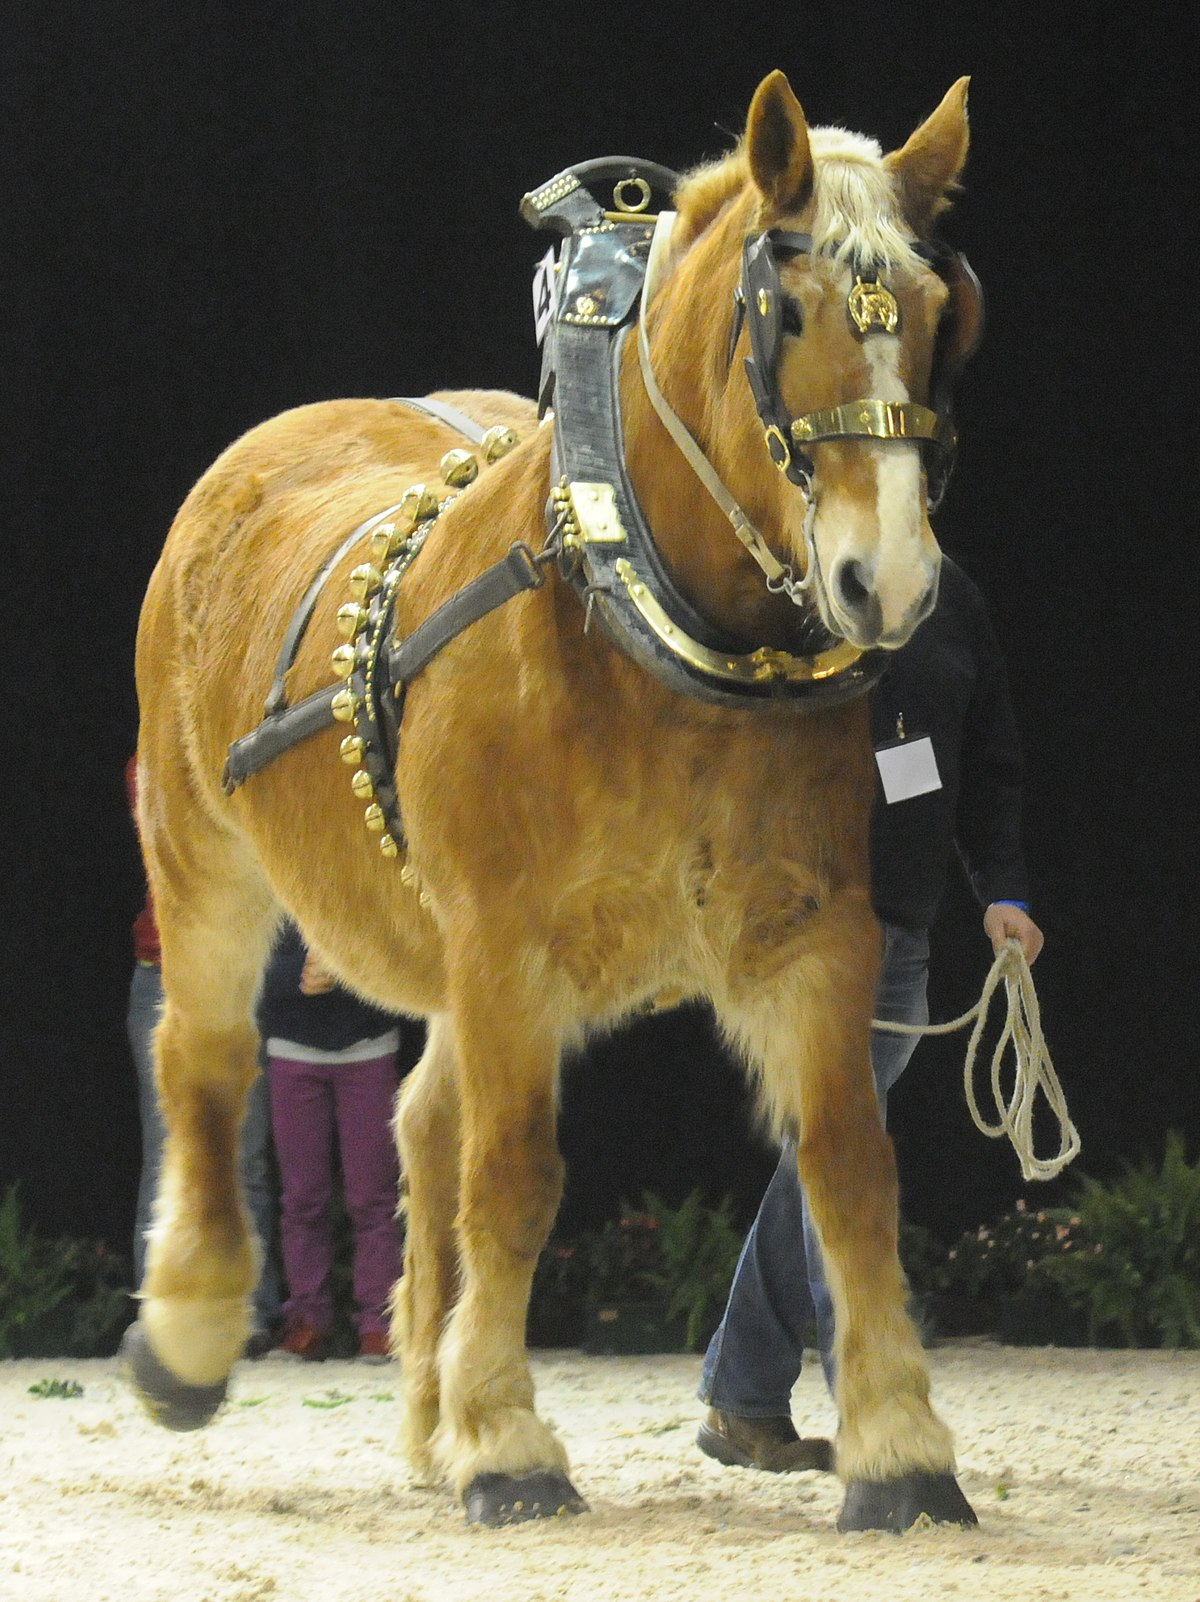 Flemish Horses & Cydesdales: Flemish Draft Horses are the Forebears of Shire Horses